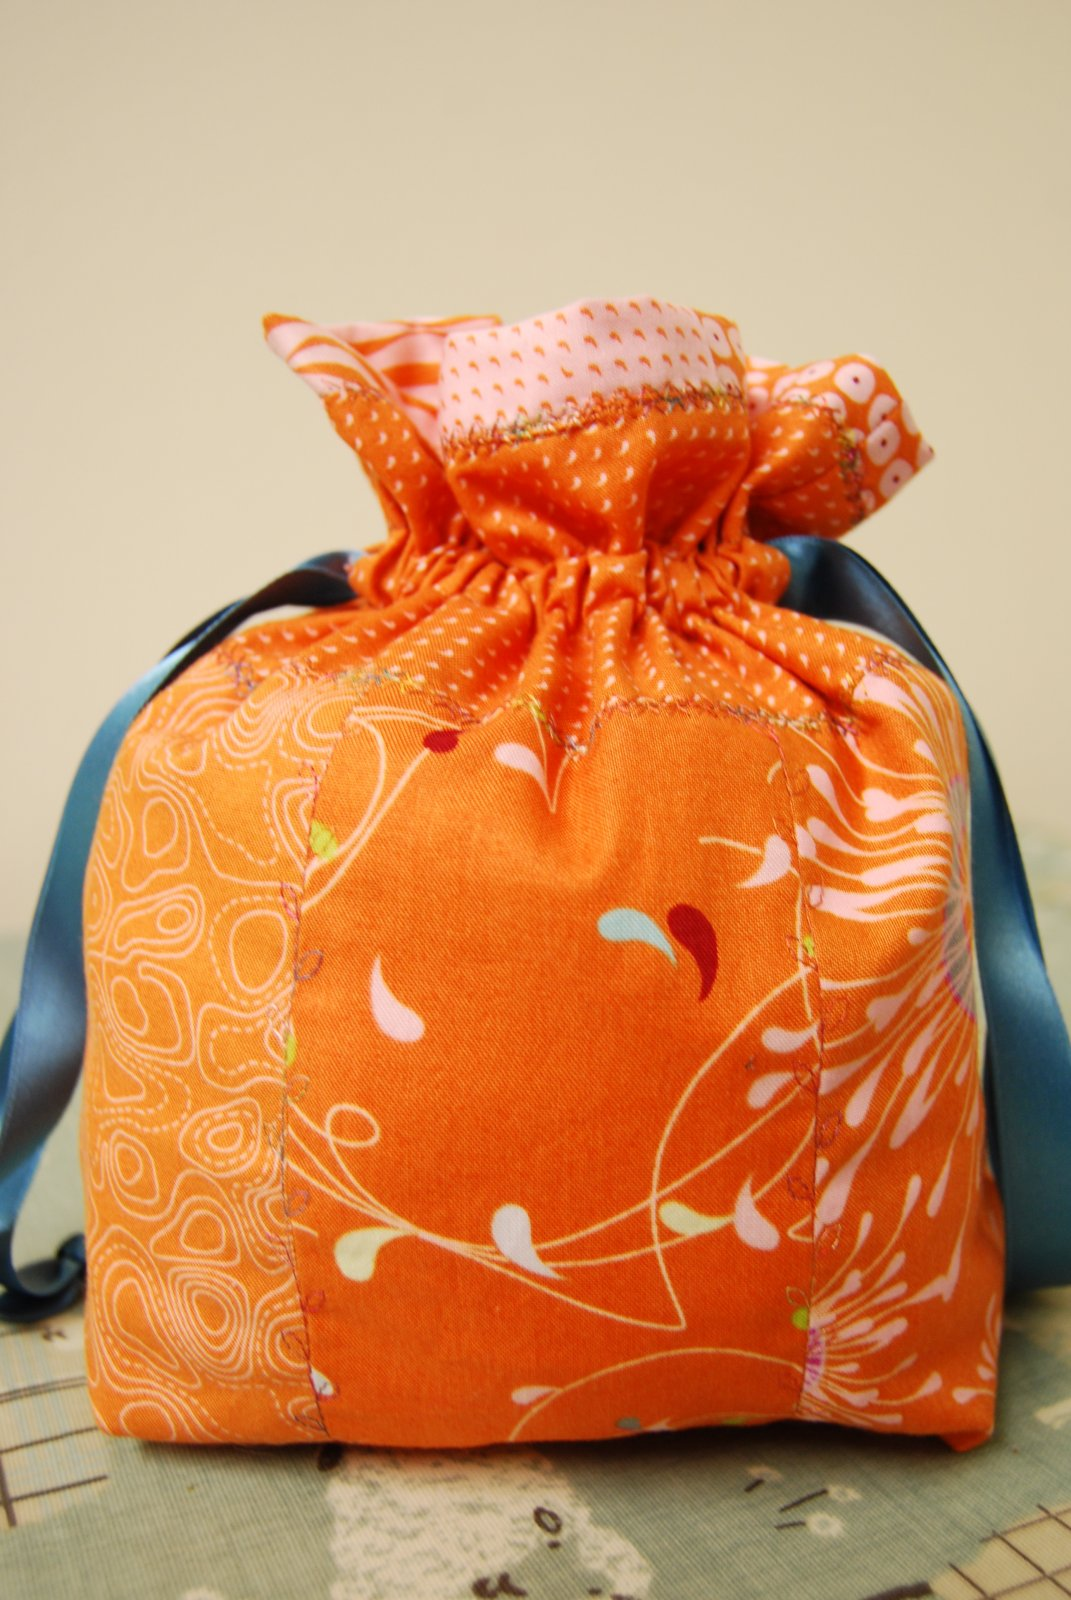 'Oranges' Project Bag - Made by Kerry for The Woolpatch